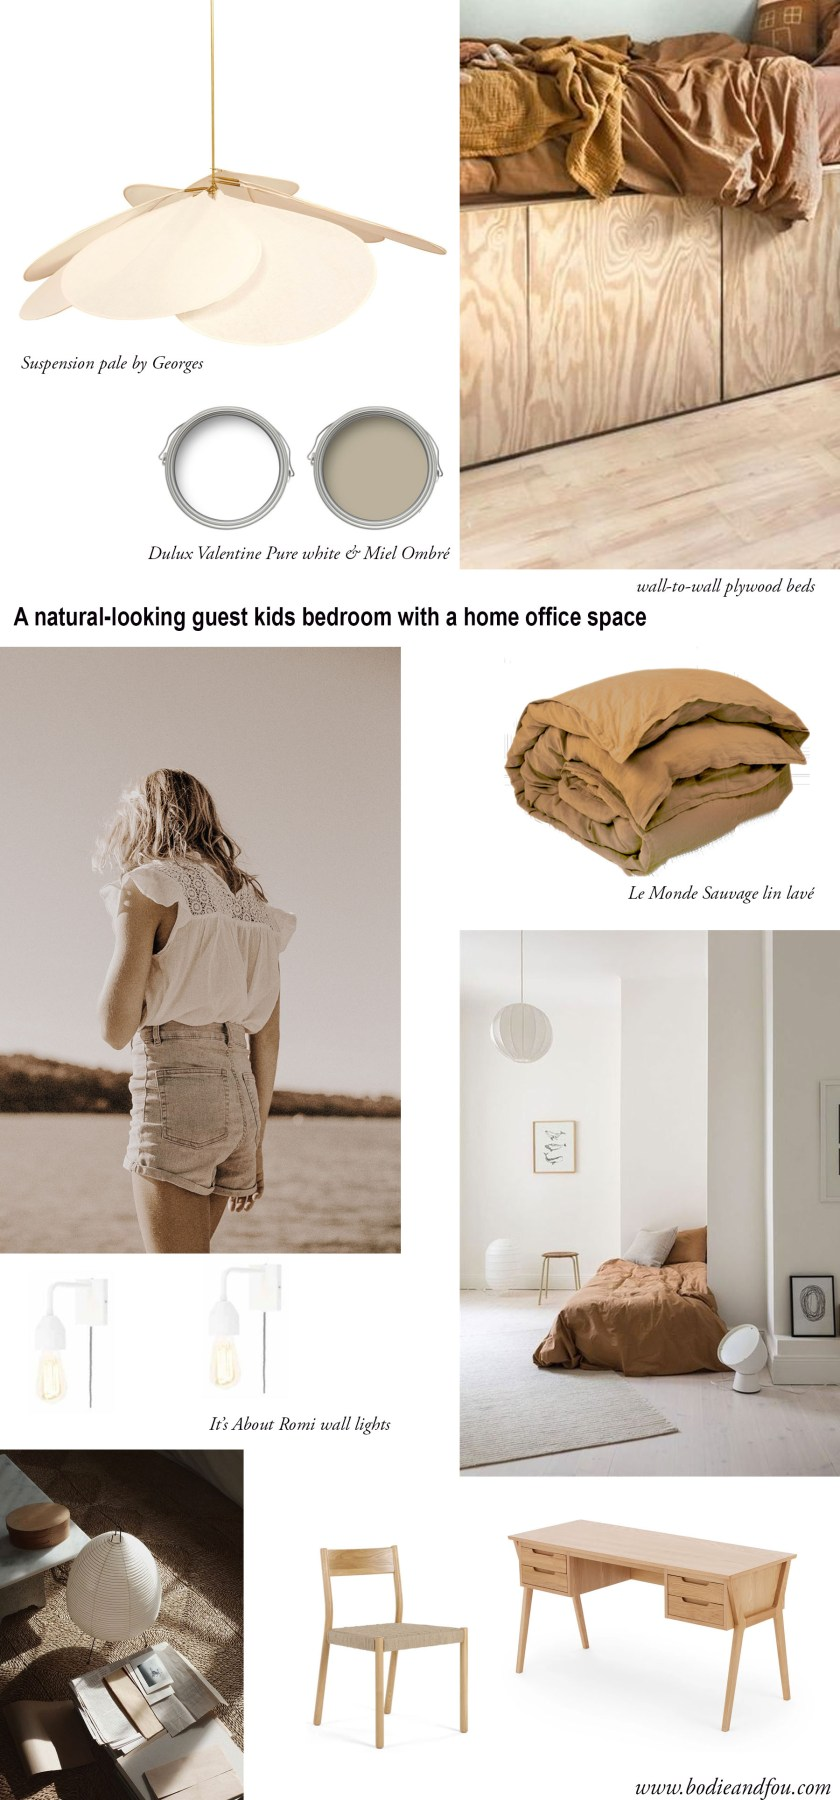 Mood board for a bedroom makeover with plywood